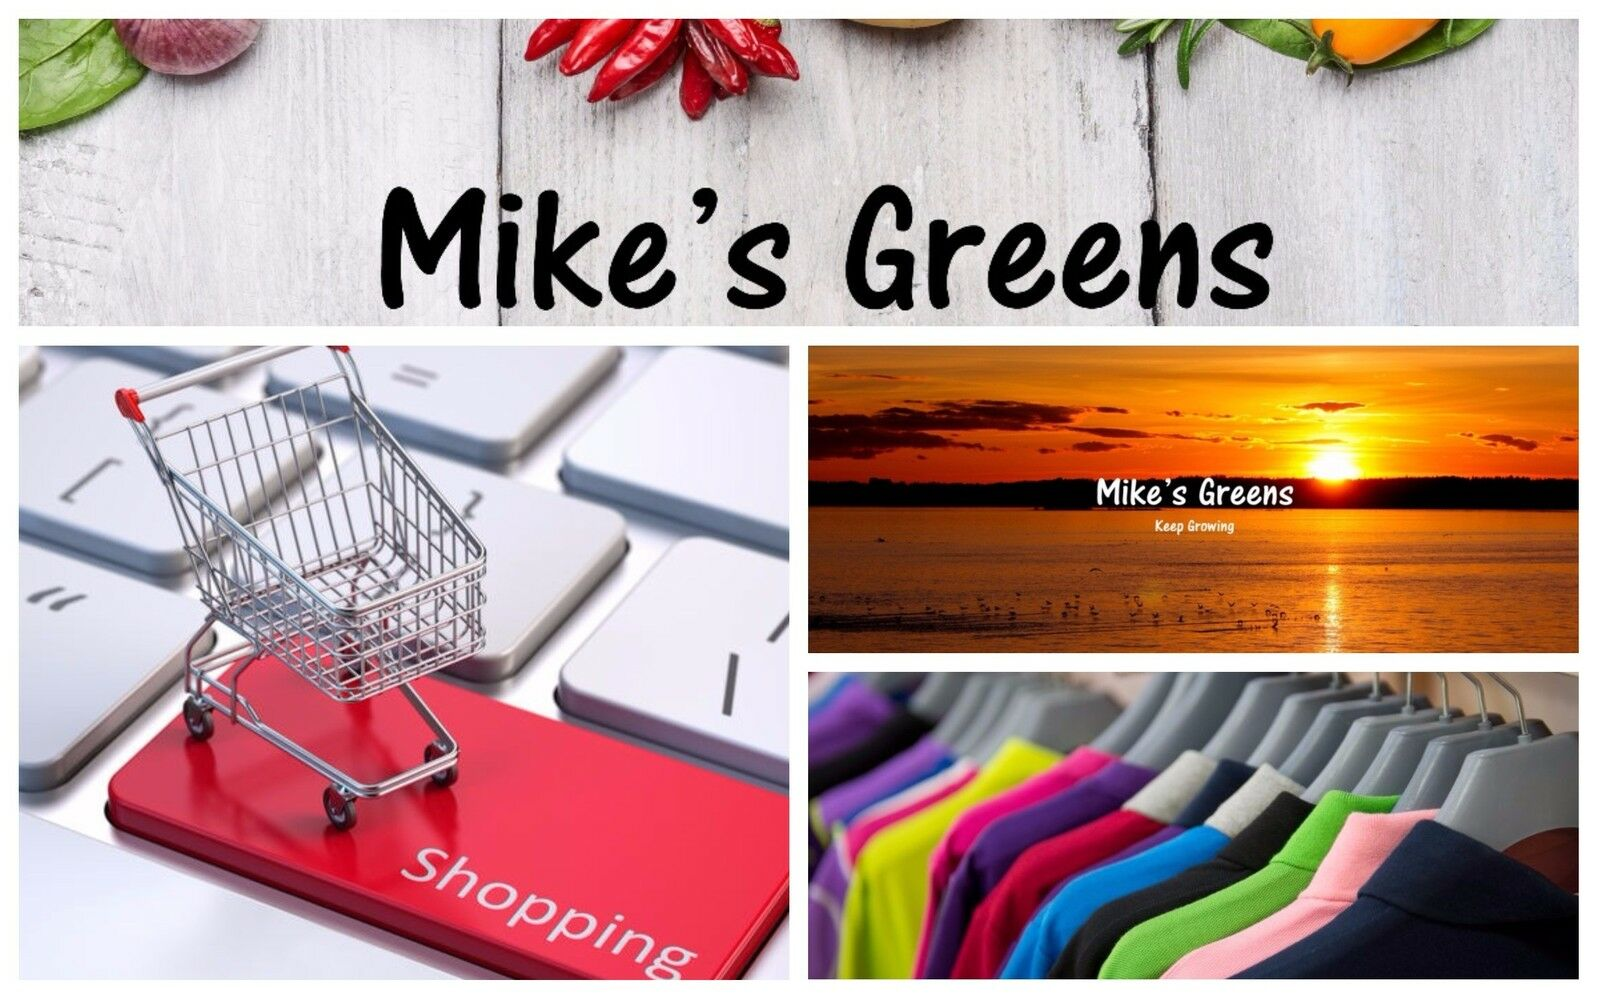 Mikes Greens